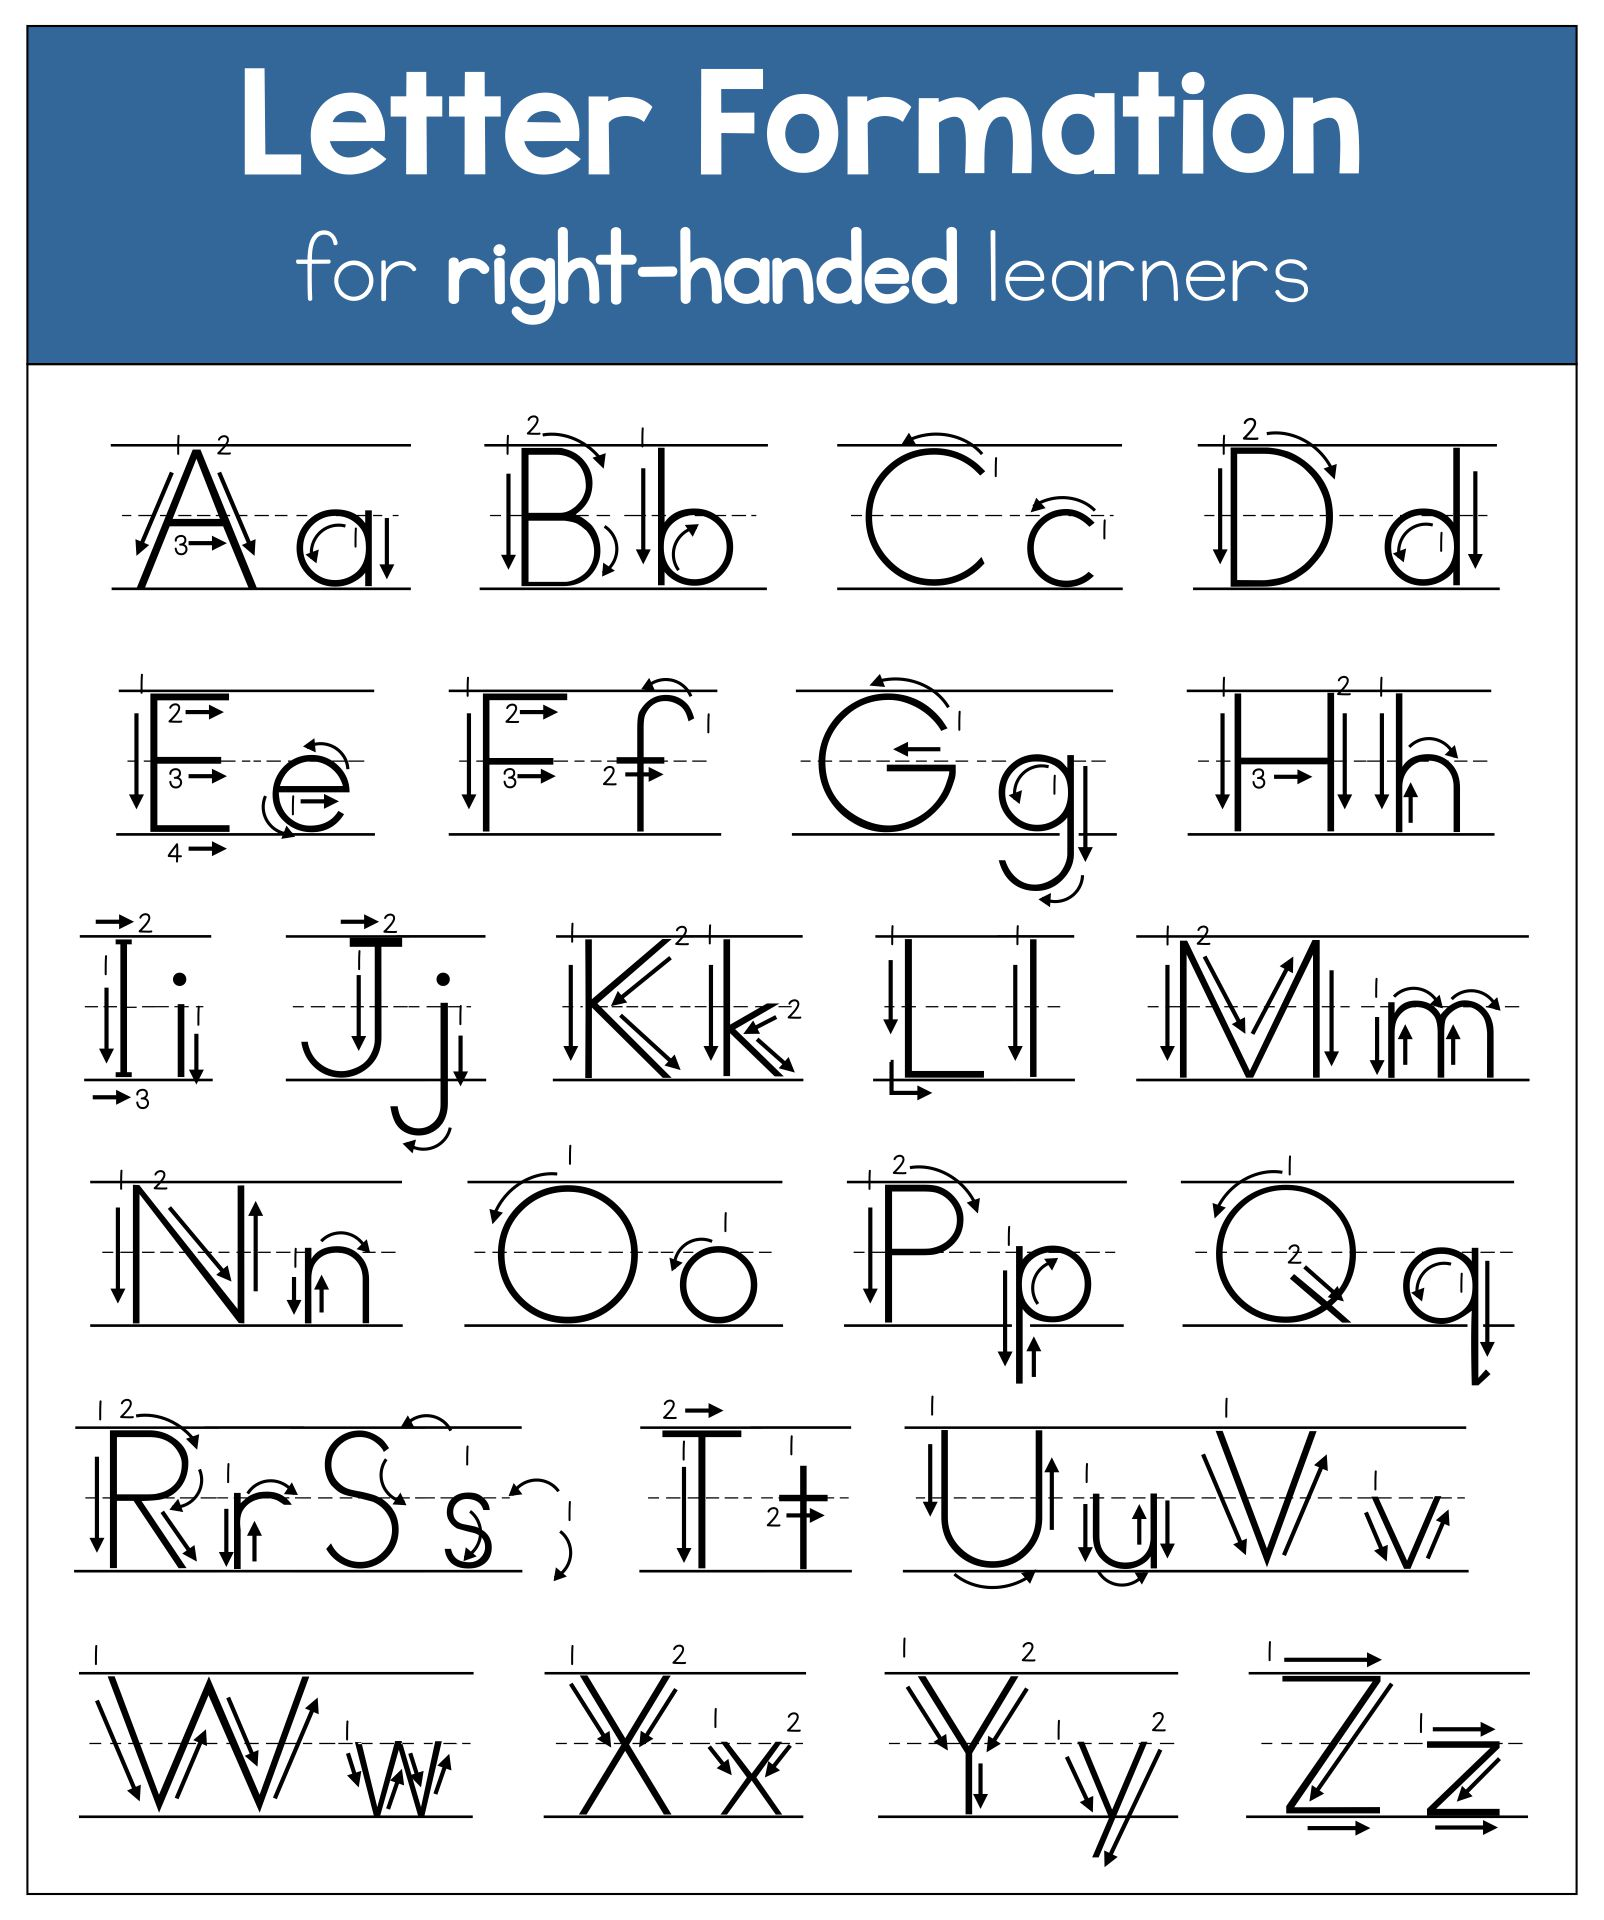 7 Images of Zaner-Bloser Handwriting Chart Printable